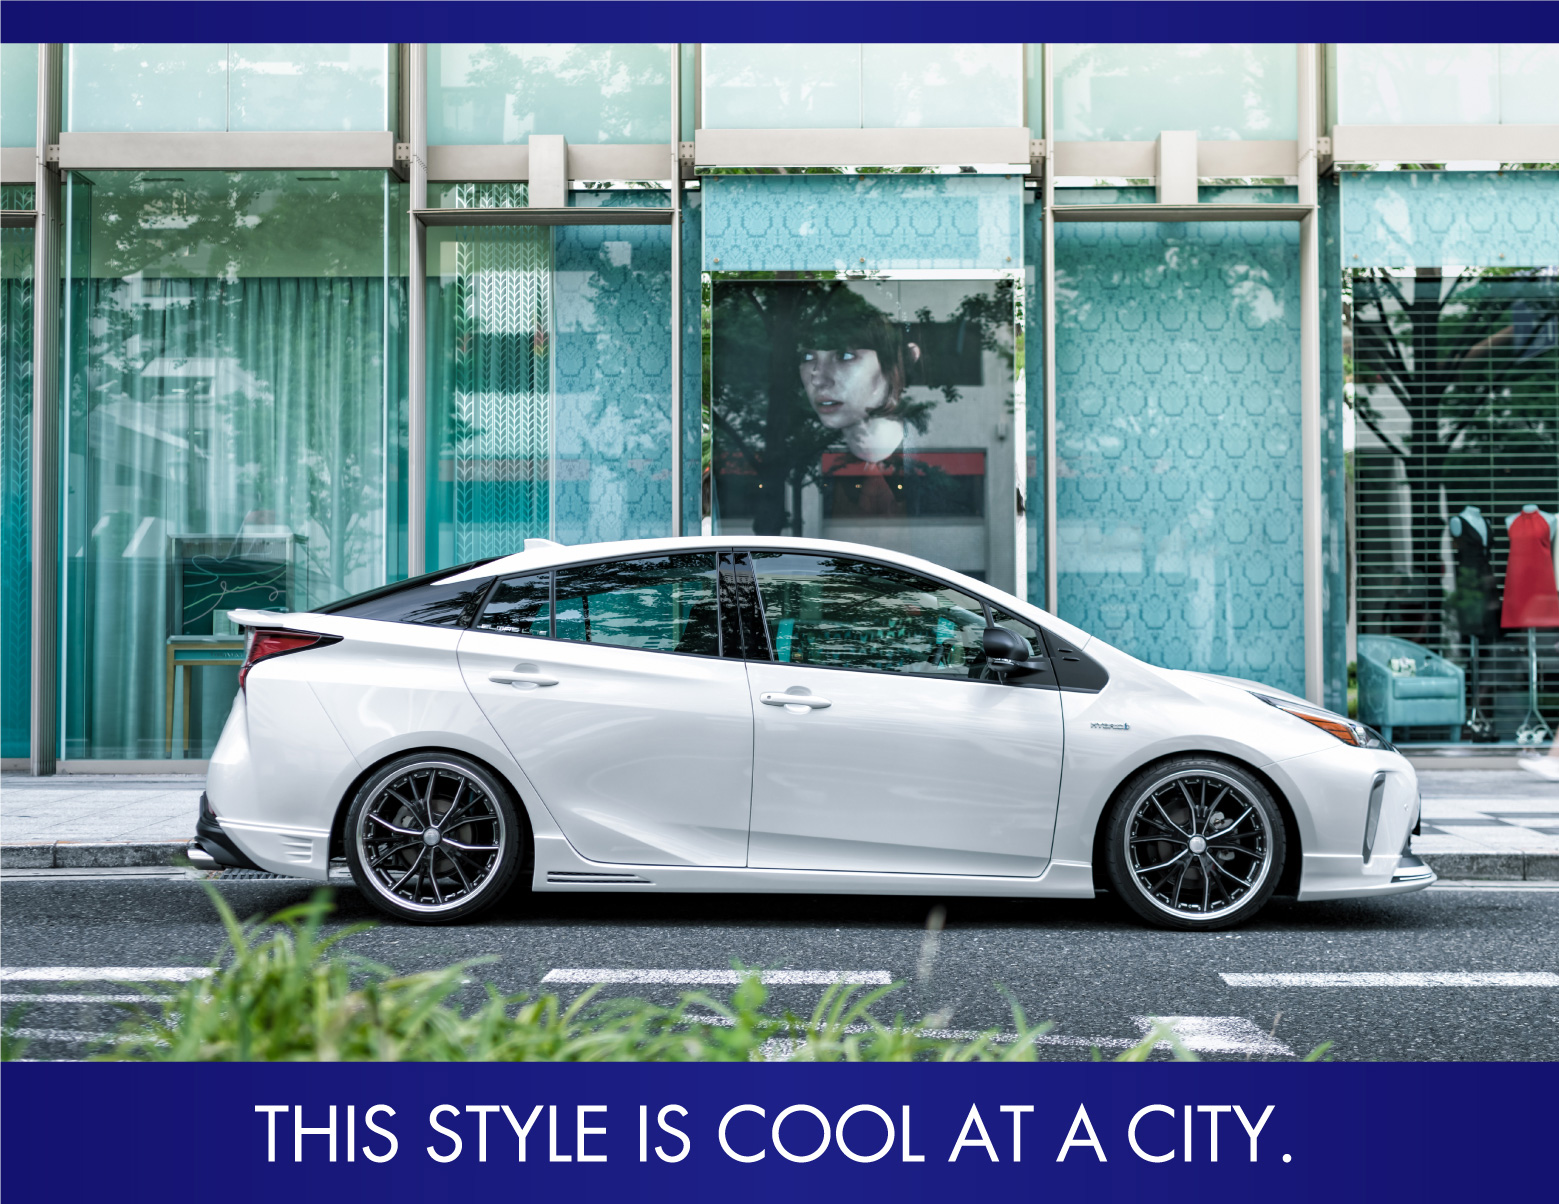 THIS STYLE IS COOL AT A CITY.